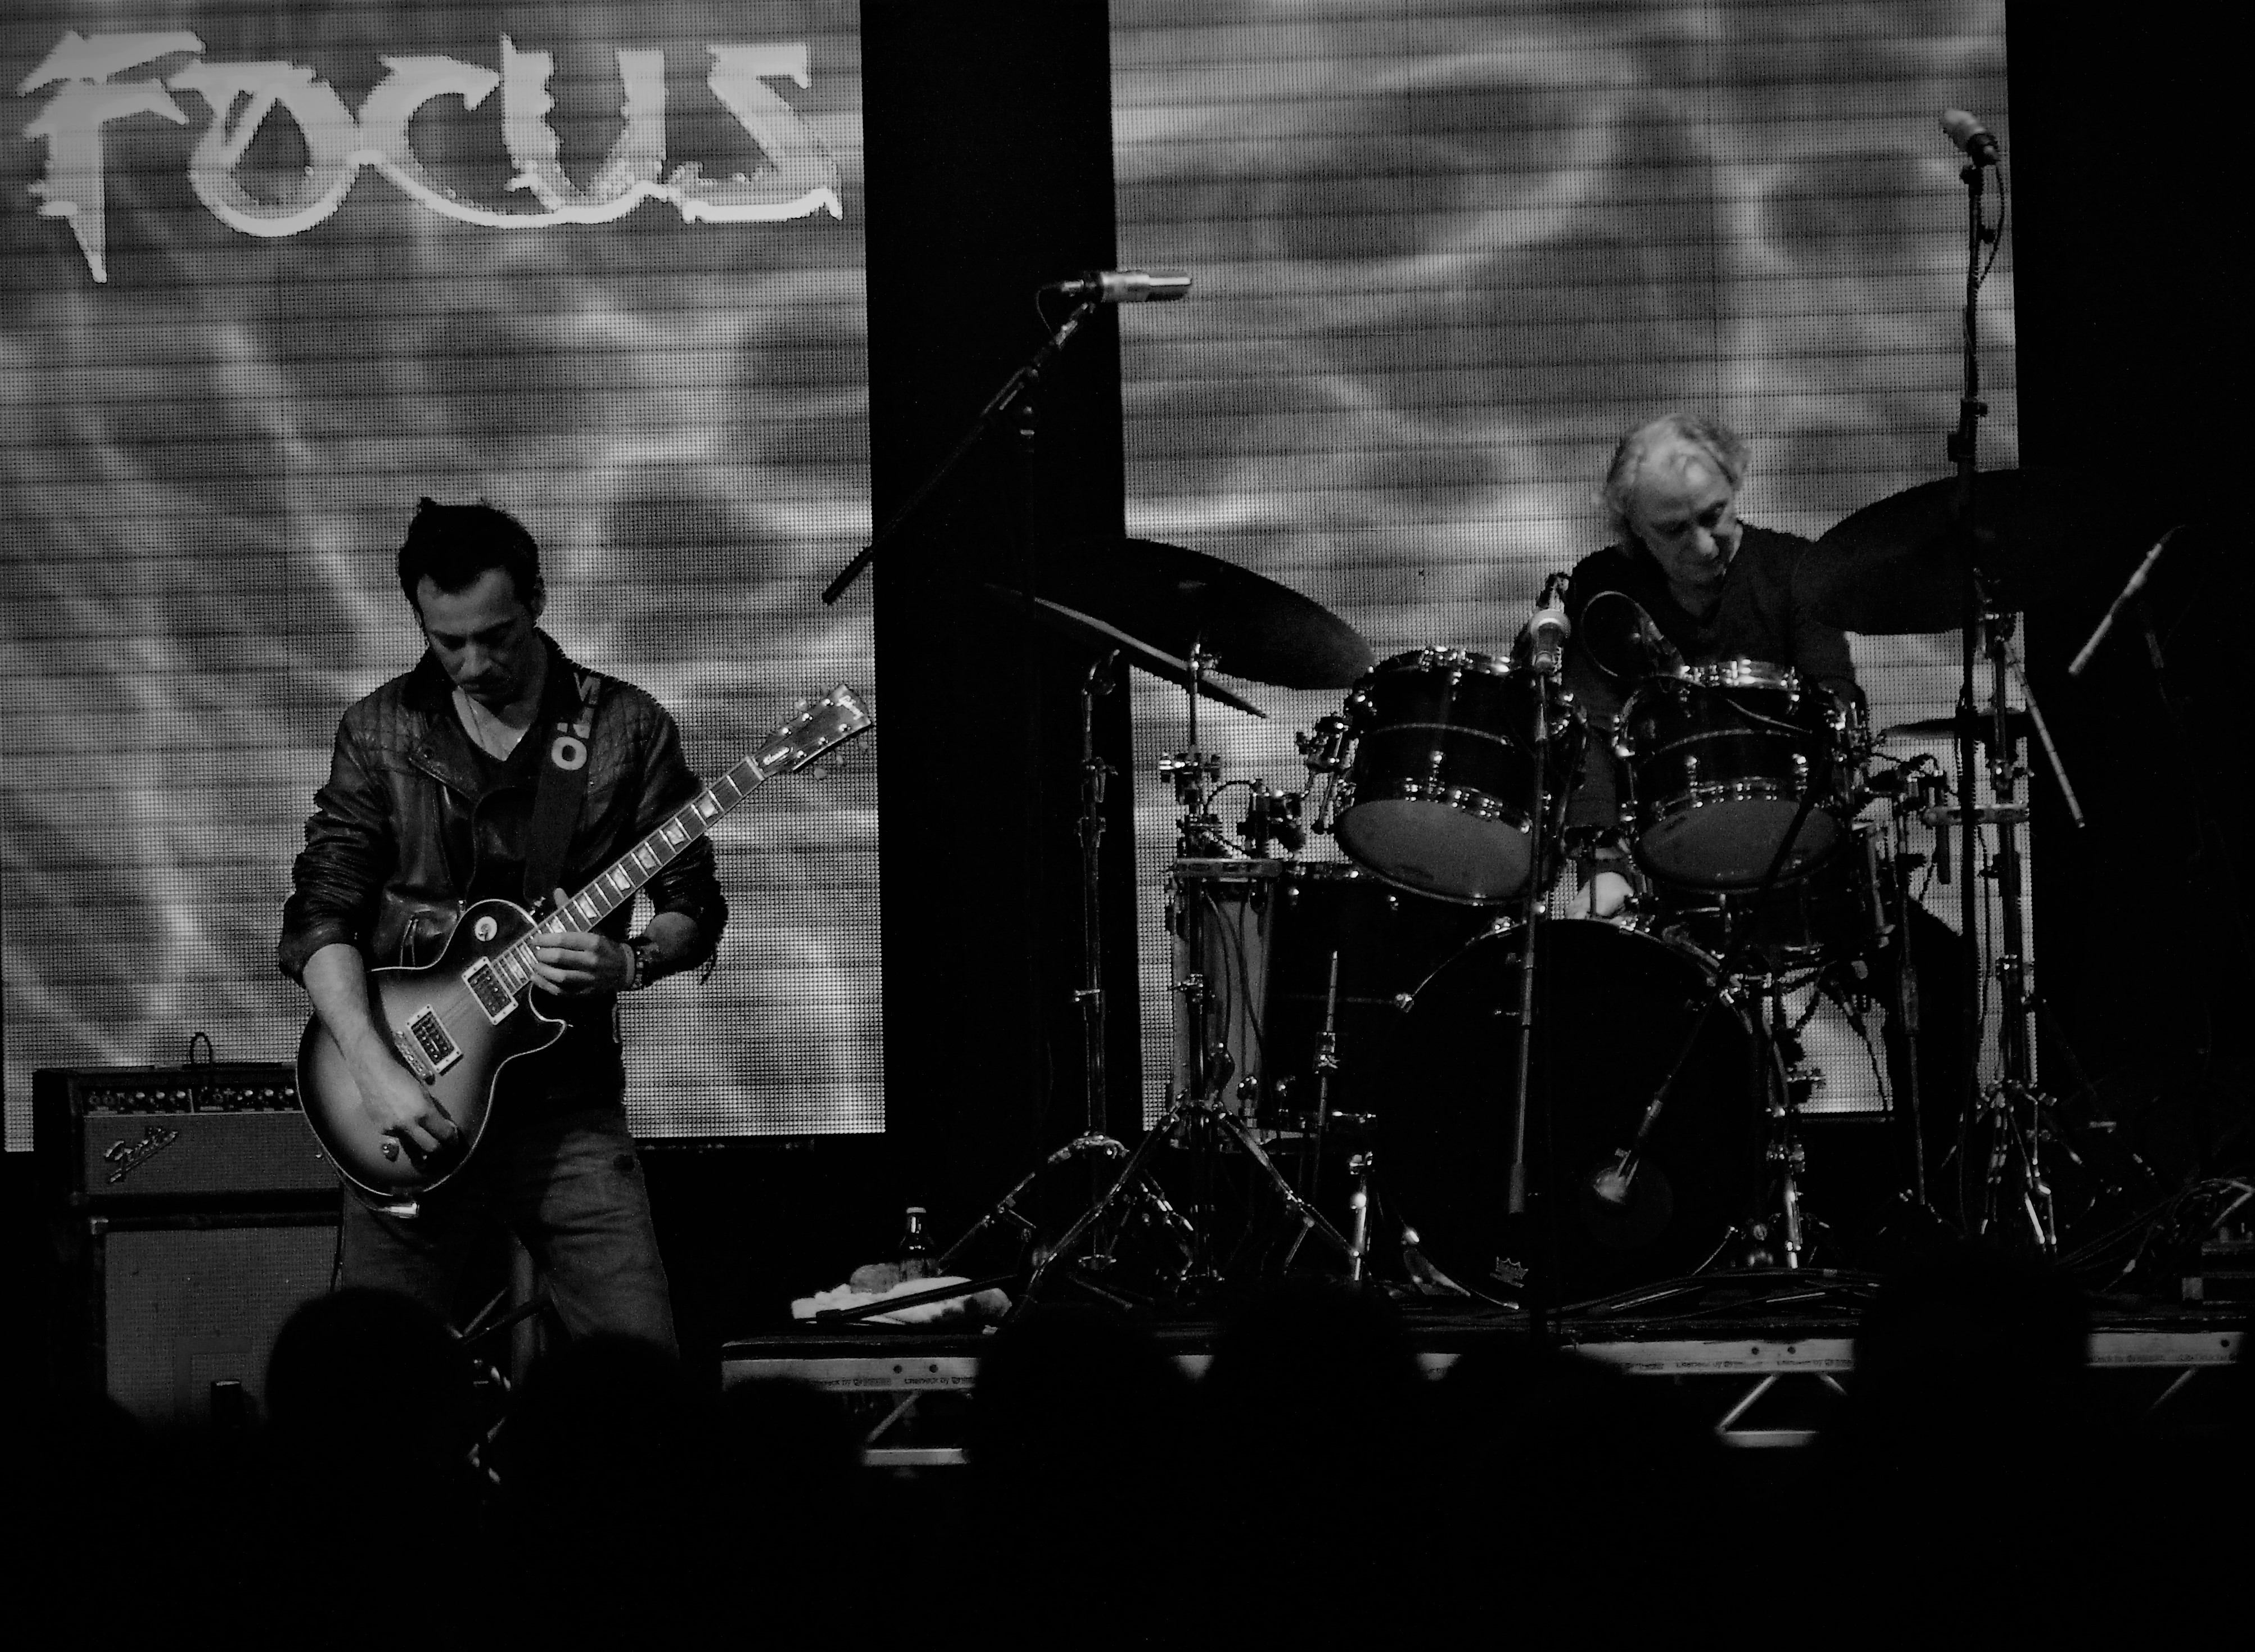 Day 3 - Main Stage_3 - Focus (7)